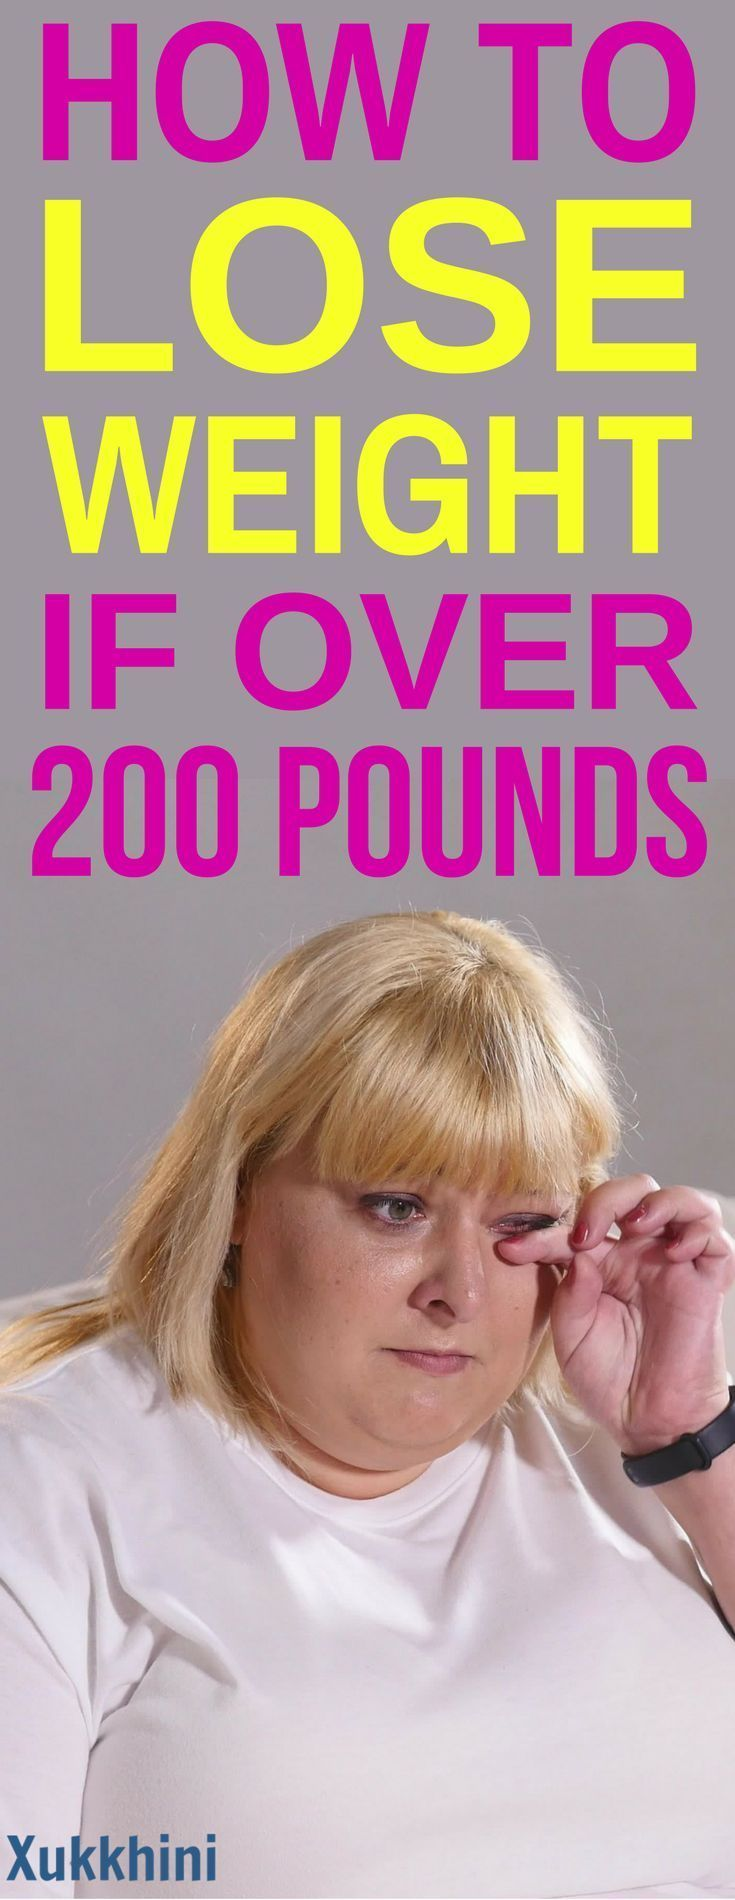 Really quick weight loss tips   the best thing to lose weighthealthyeating